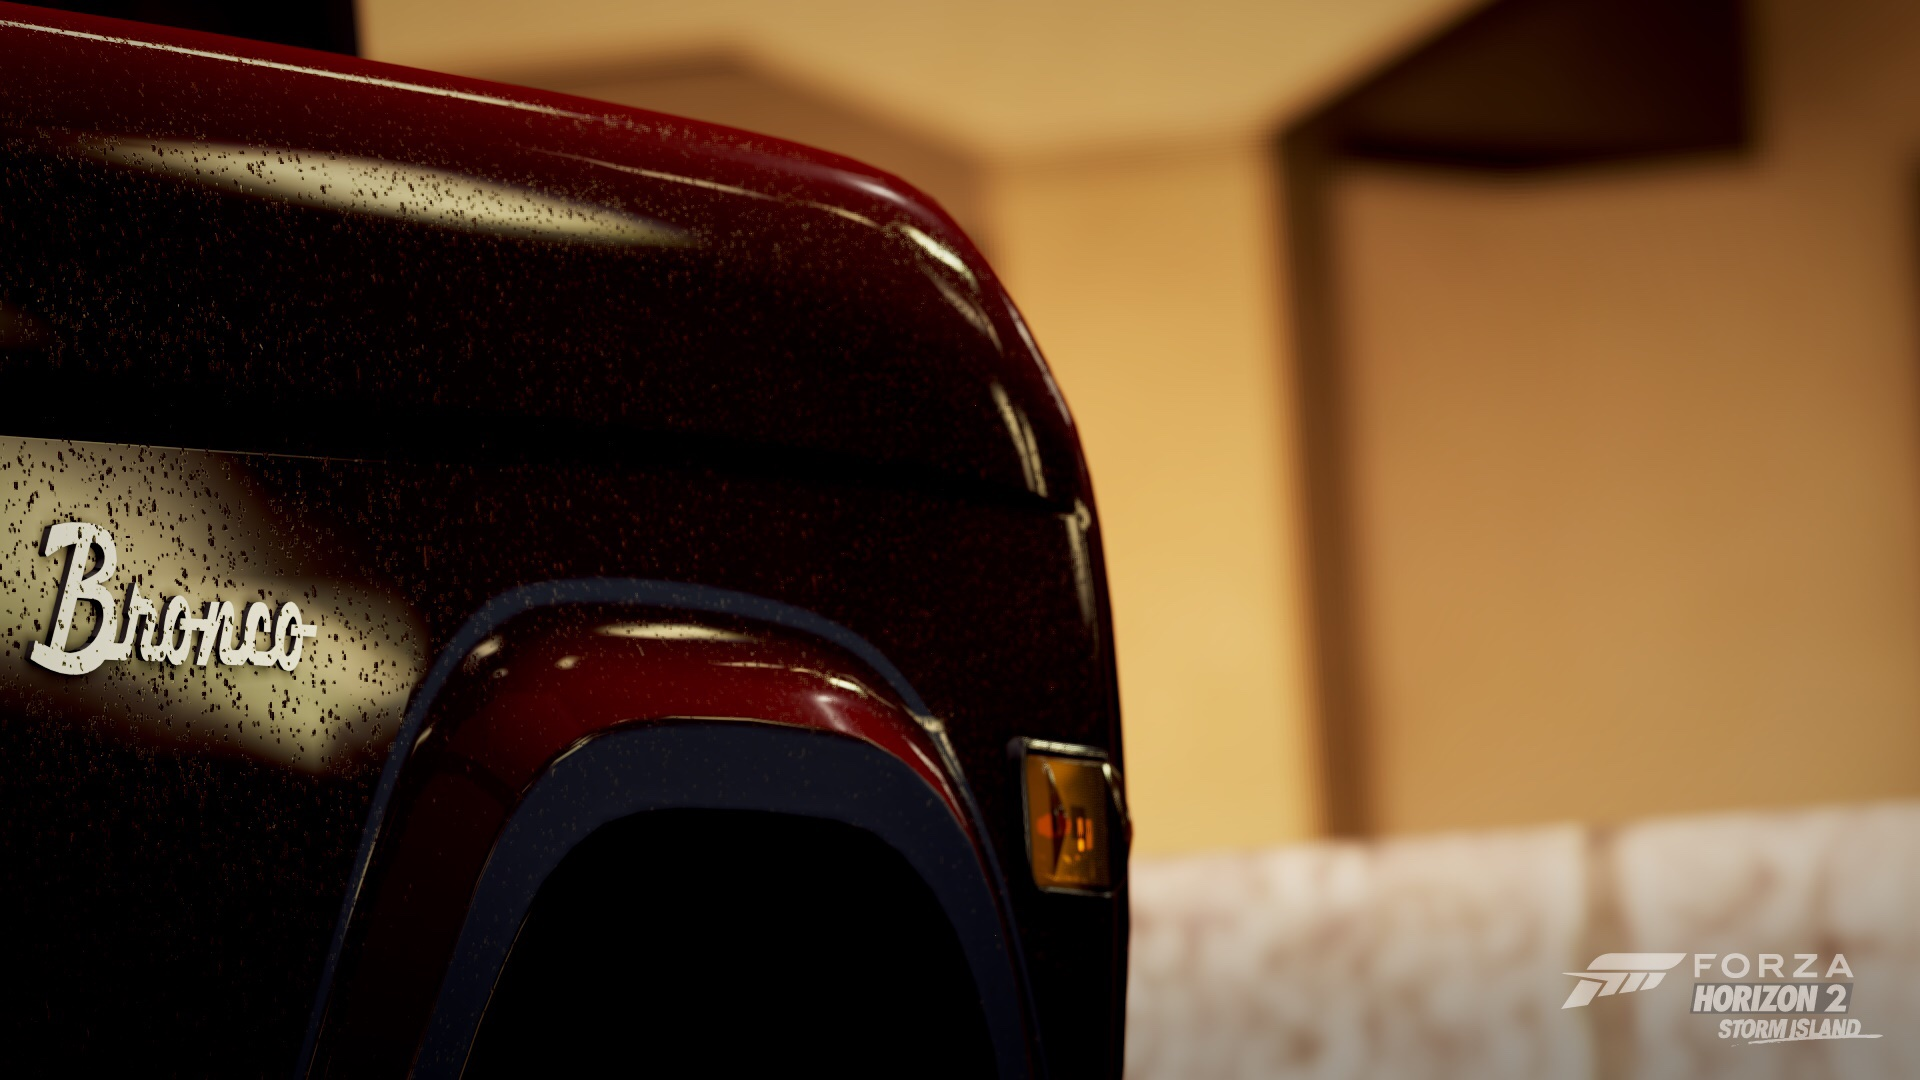 forza horizon 2 gaming chair caning prices photo thread you don 39t take a